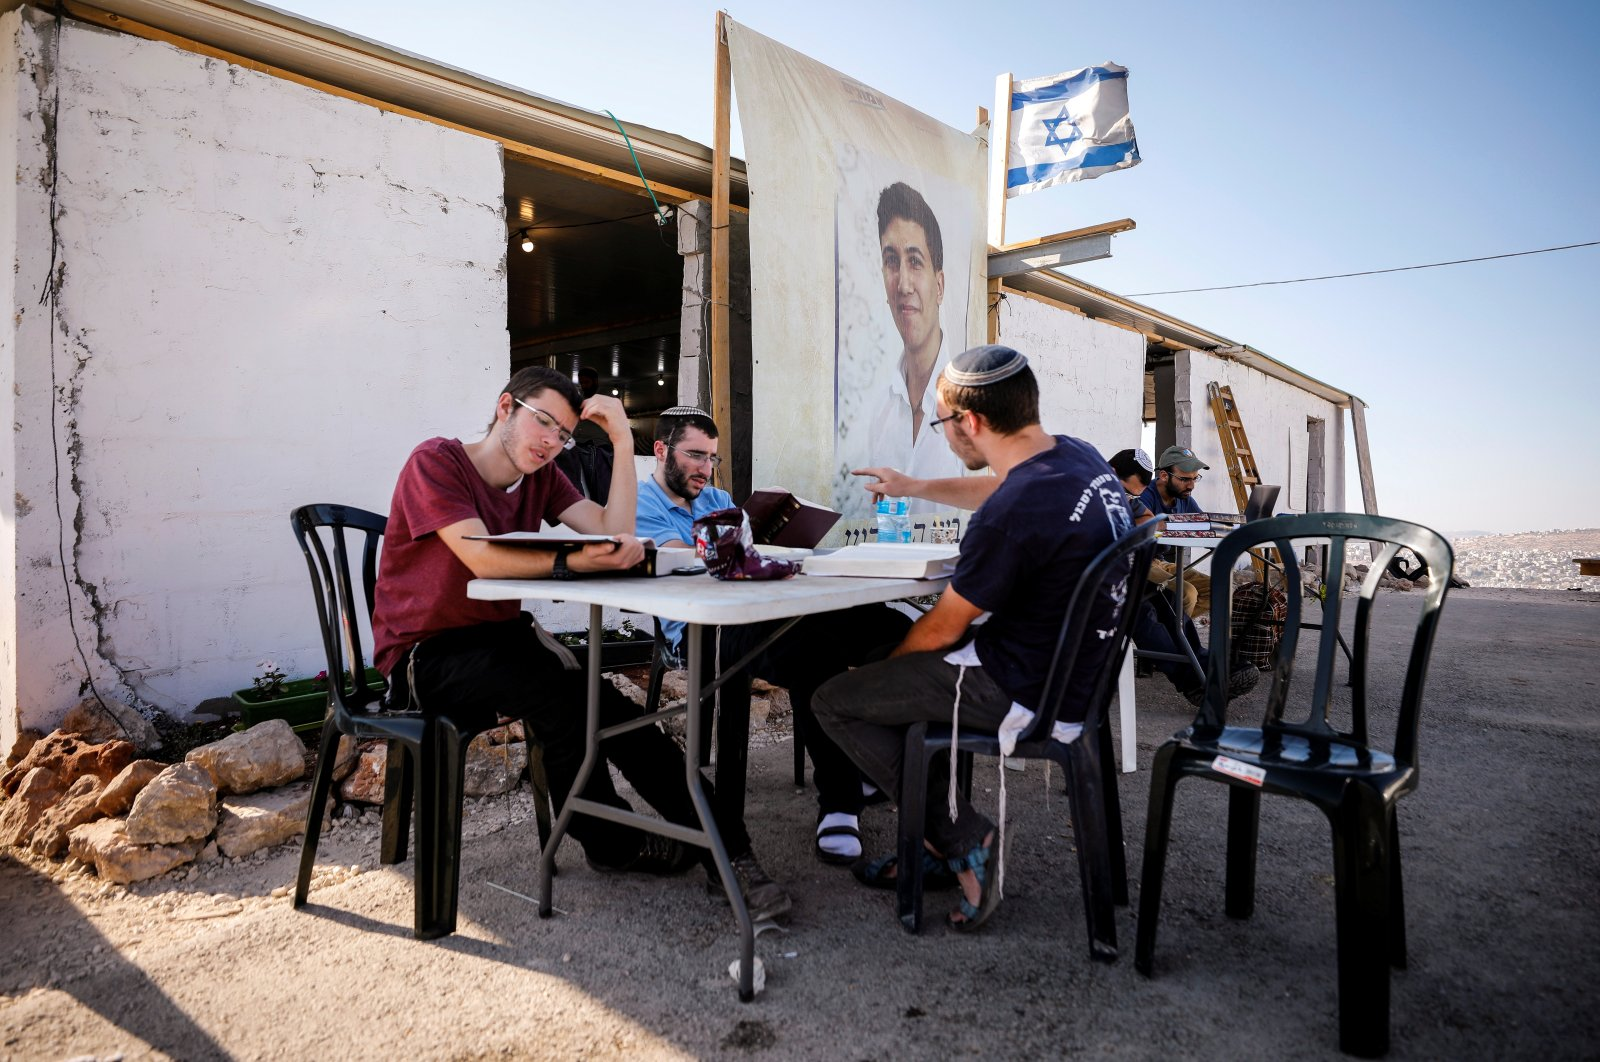 Jewish settlers study together in Givat Eviatar, a new Israeli settler outpost, near the Palestinian village of Beita in the Israeli-occupied West Bank June 23, 2021. (Reuters Photo)